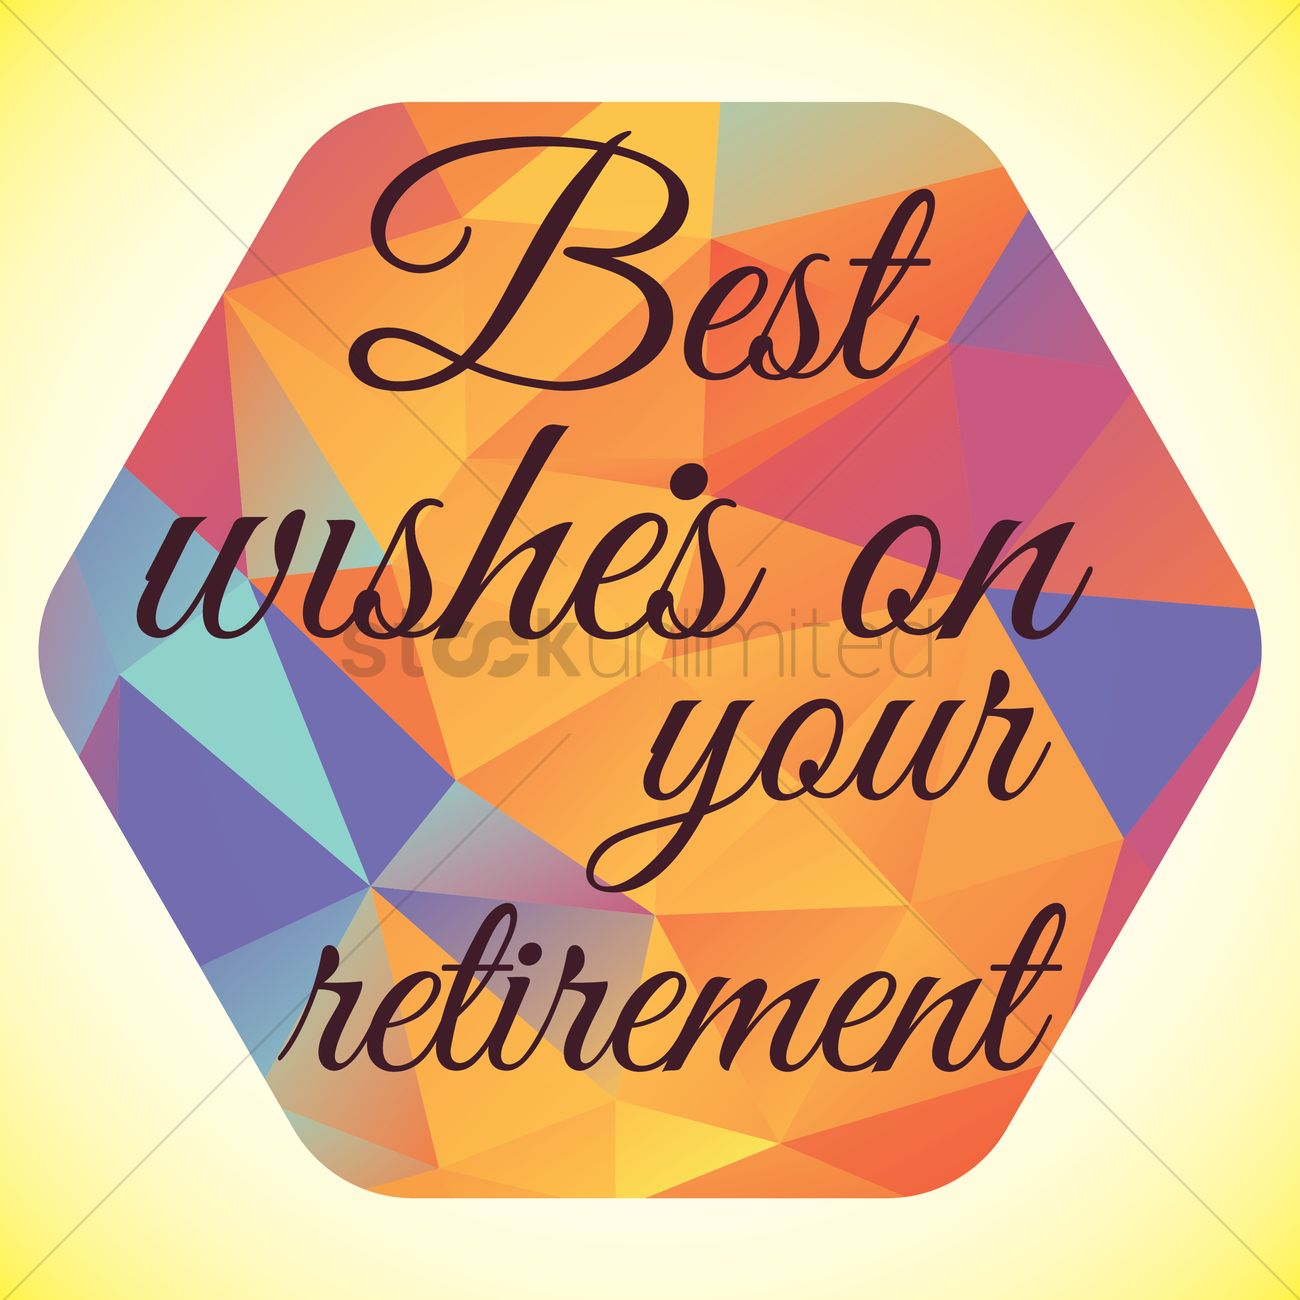 happy retirement wish vector image 1827610 stockunlimited free retirement clip art for women free retirement clip art for men